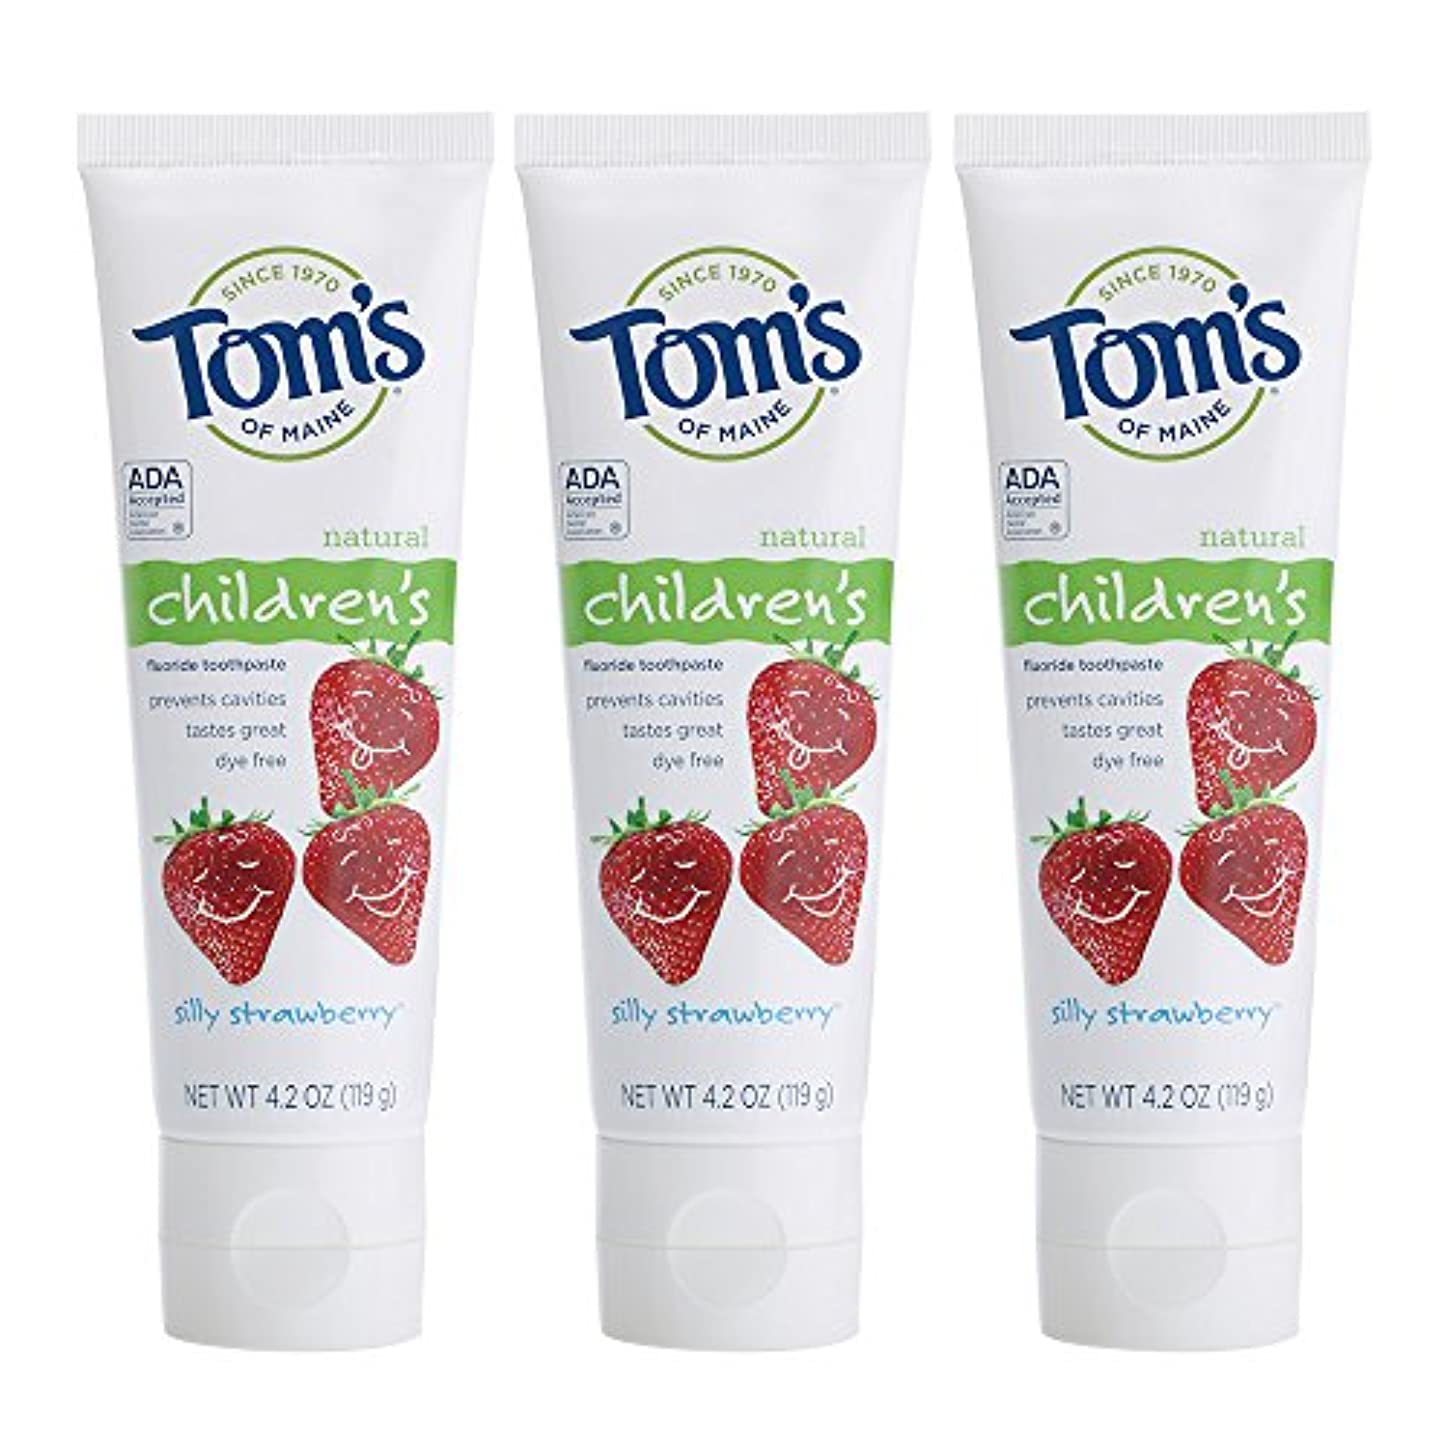 Tom's of Maine, Natural Children's Fluoride Toothpaste, Silly Strawberry, 4.2 oz (119 g)